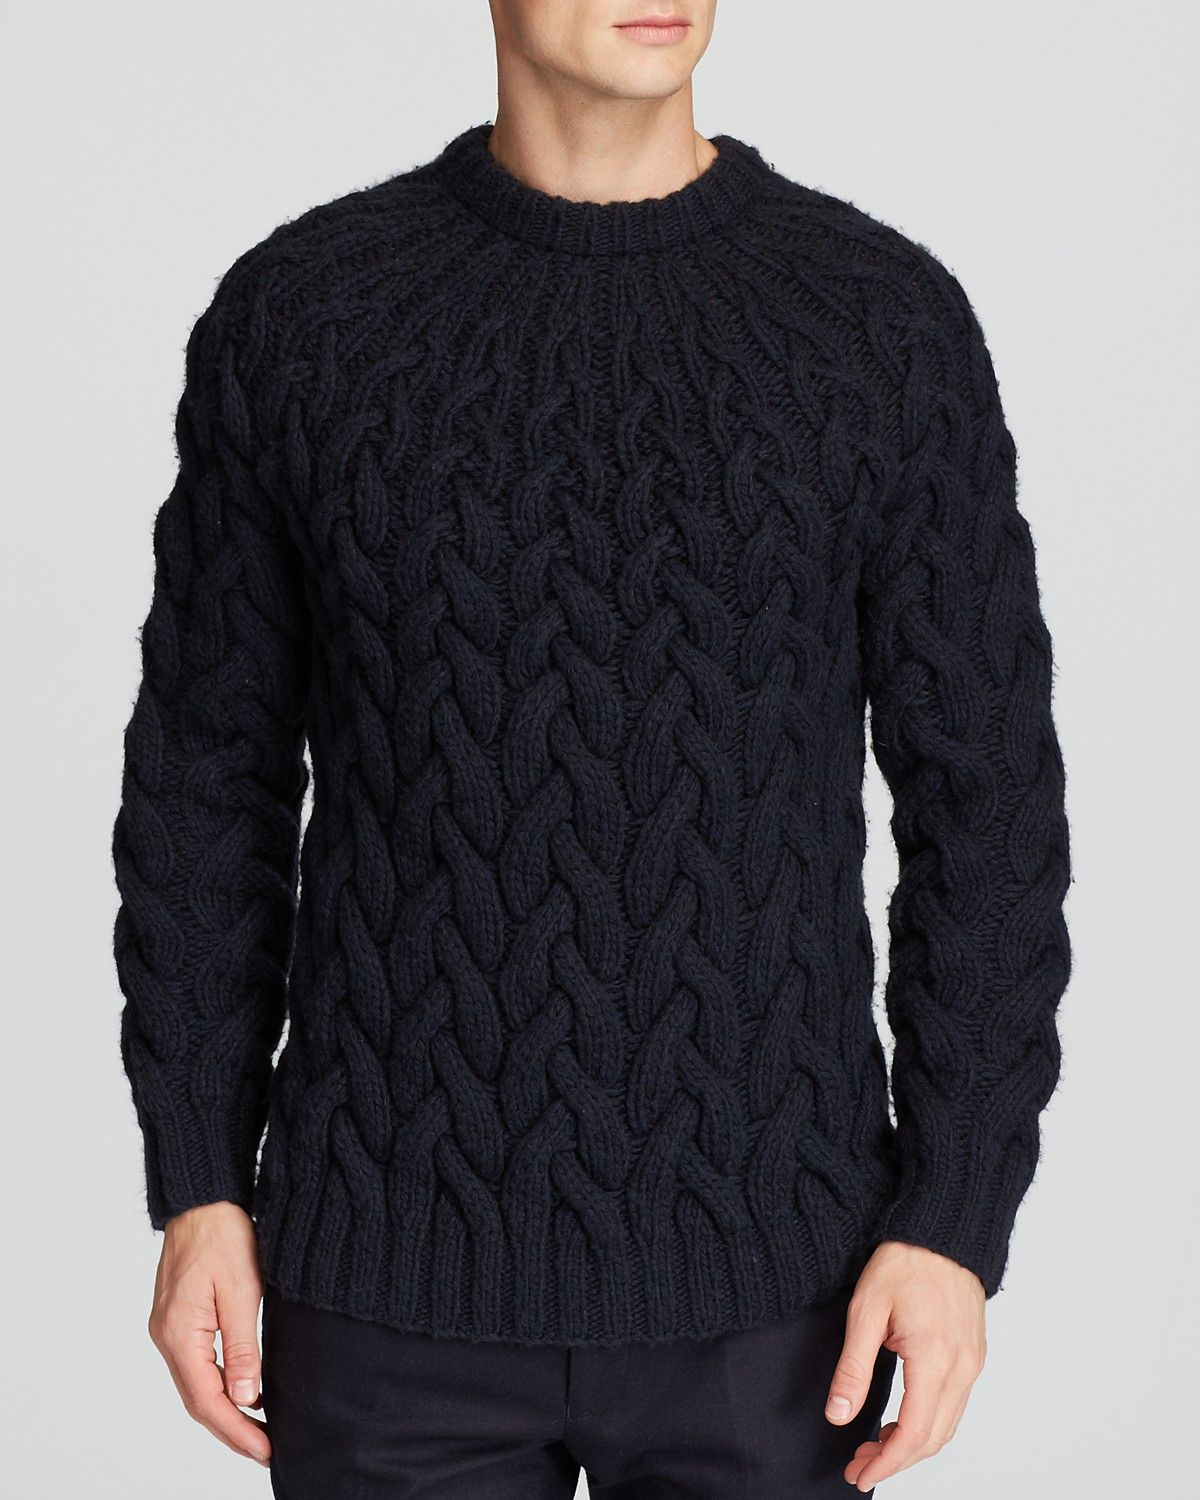 Michael Kors Expanding Cable Knit Sweater Bloomingdale's